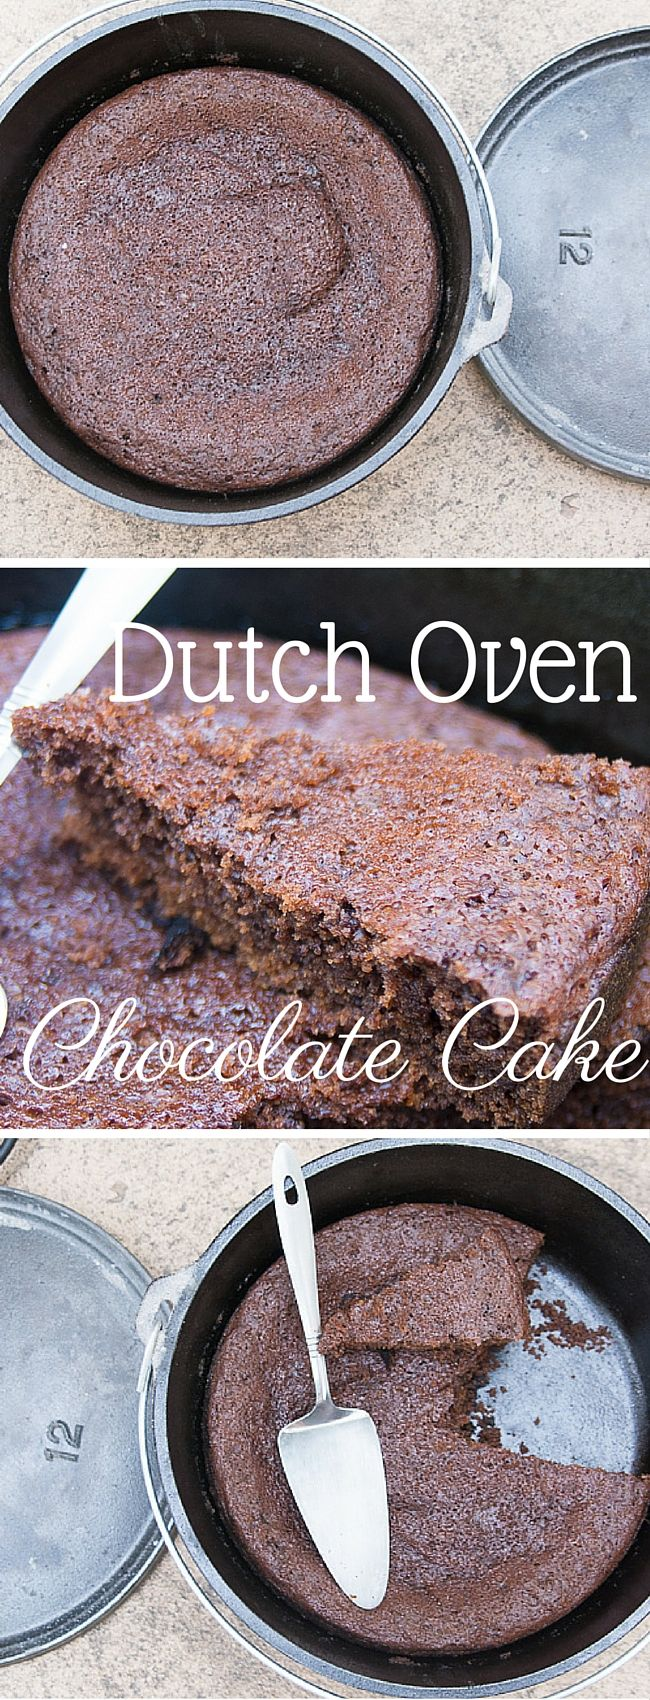 This amazing dutch oven chocolate recipe is moist, decadent, and every bite is oozing with flavor. It's the BEST dutch oven recipe to have in your repertoire.